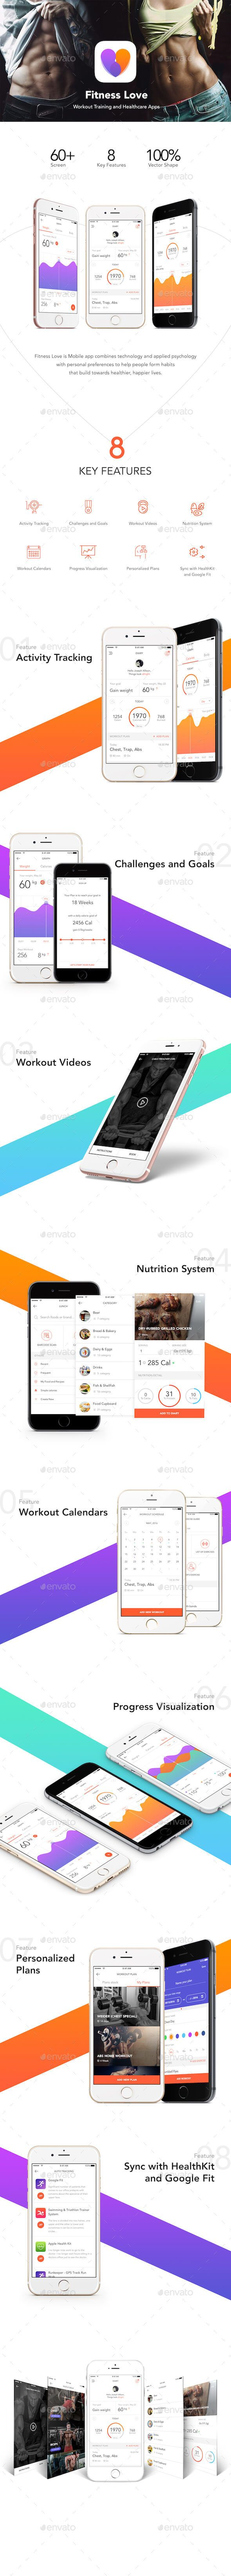 Fitness Love – Workout Training and Healthcare App UI Kit - User Interfaces Web Element Template PSD. Download here: http://graphicriver.net/item/fitness-love-workout-training-and-healthcare-app-ui-kit/16553395?ref=yinkira